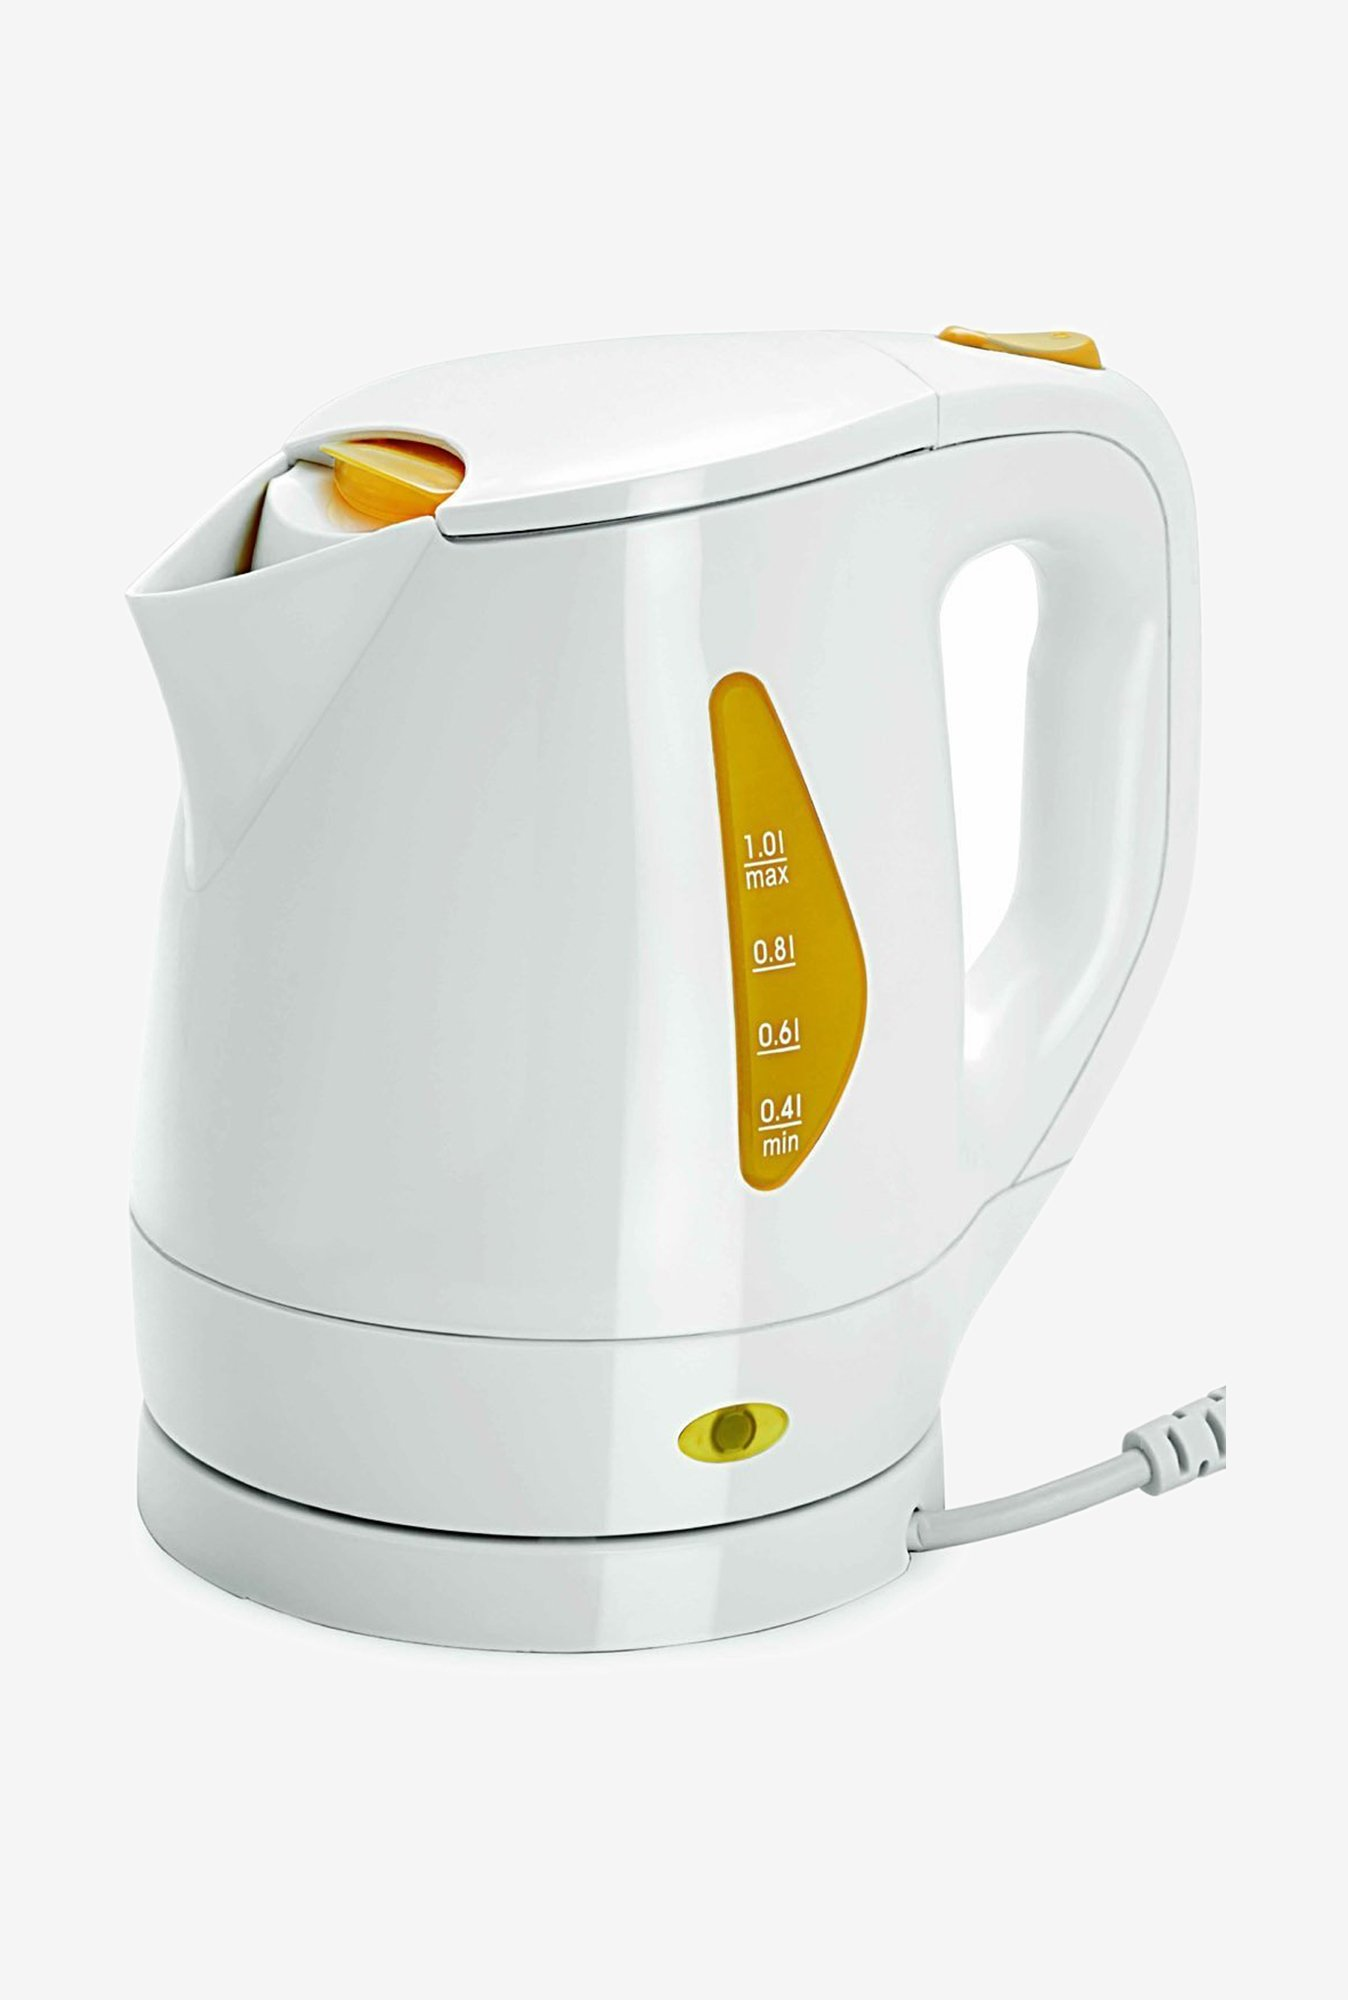 Chef Pro CPK810 1 Litre Electric Kettle (White)